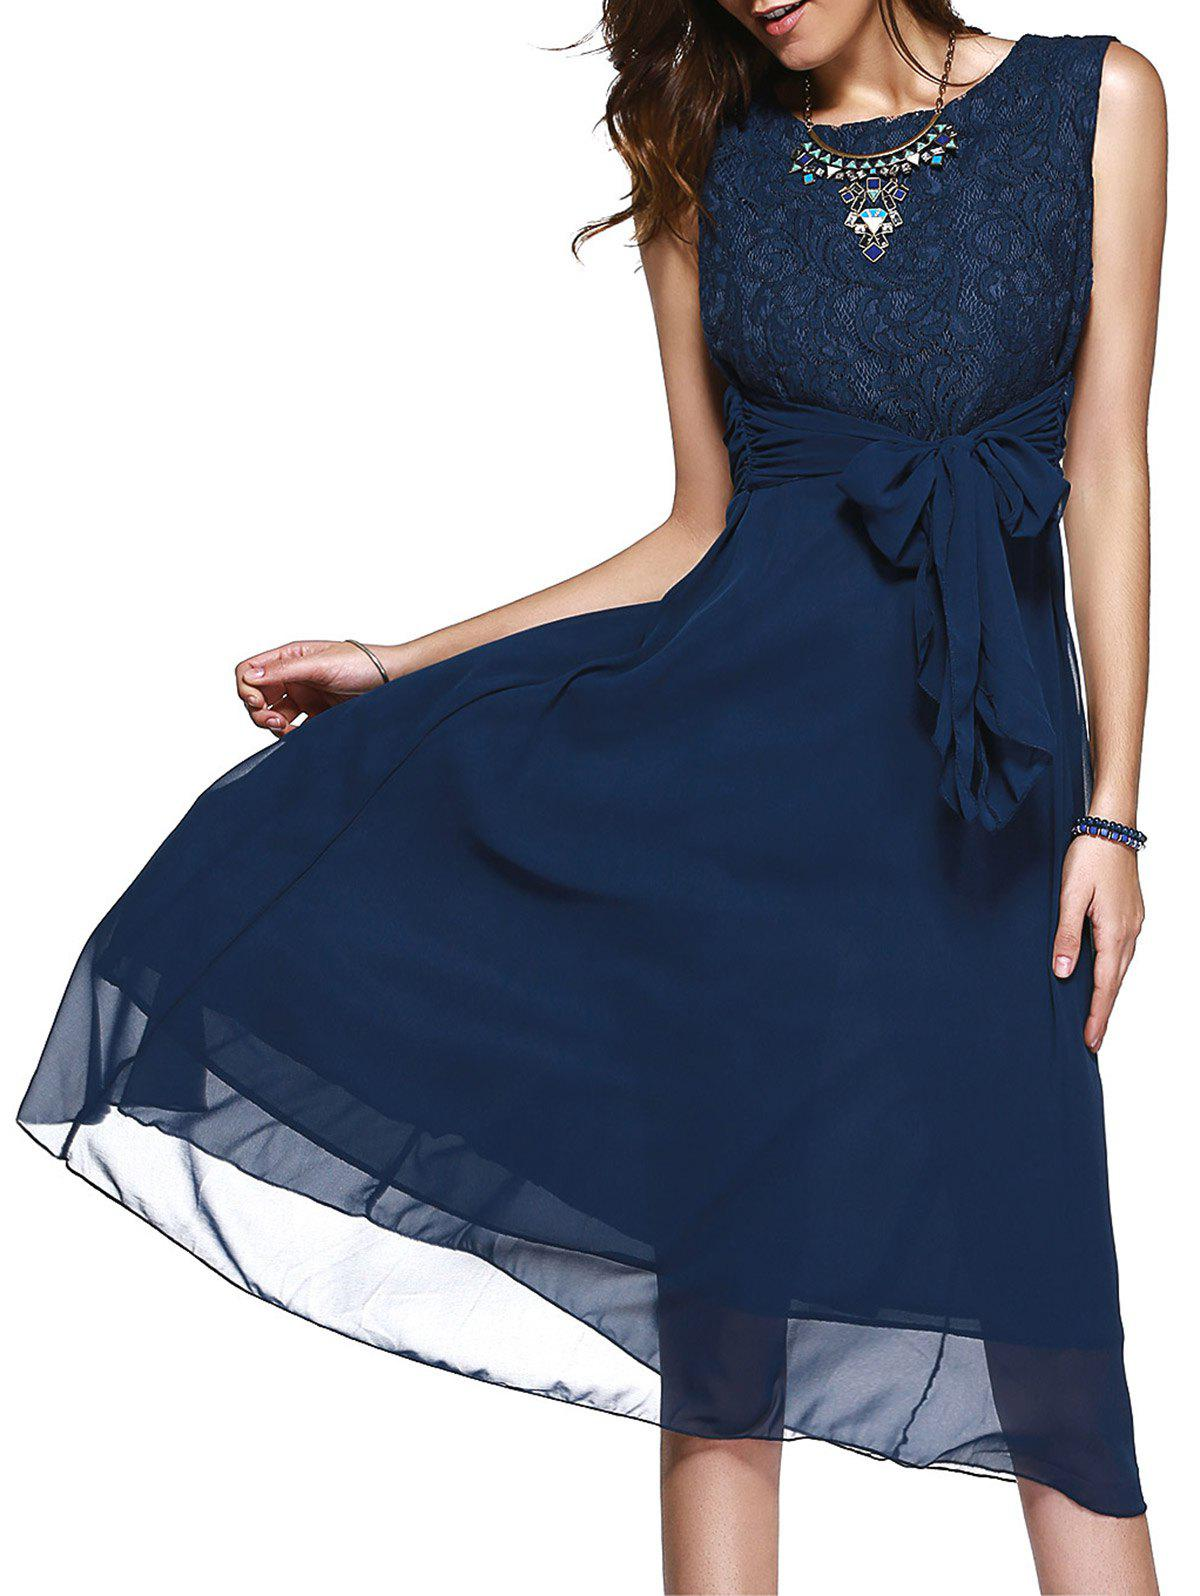 Lace Inset Chiffon A Line Swing Midi Dress - PURPLISH BLUE 2XL